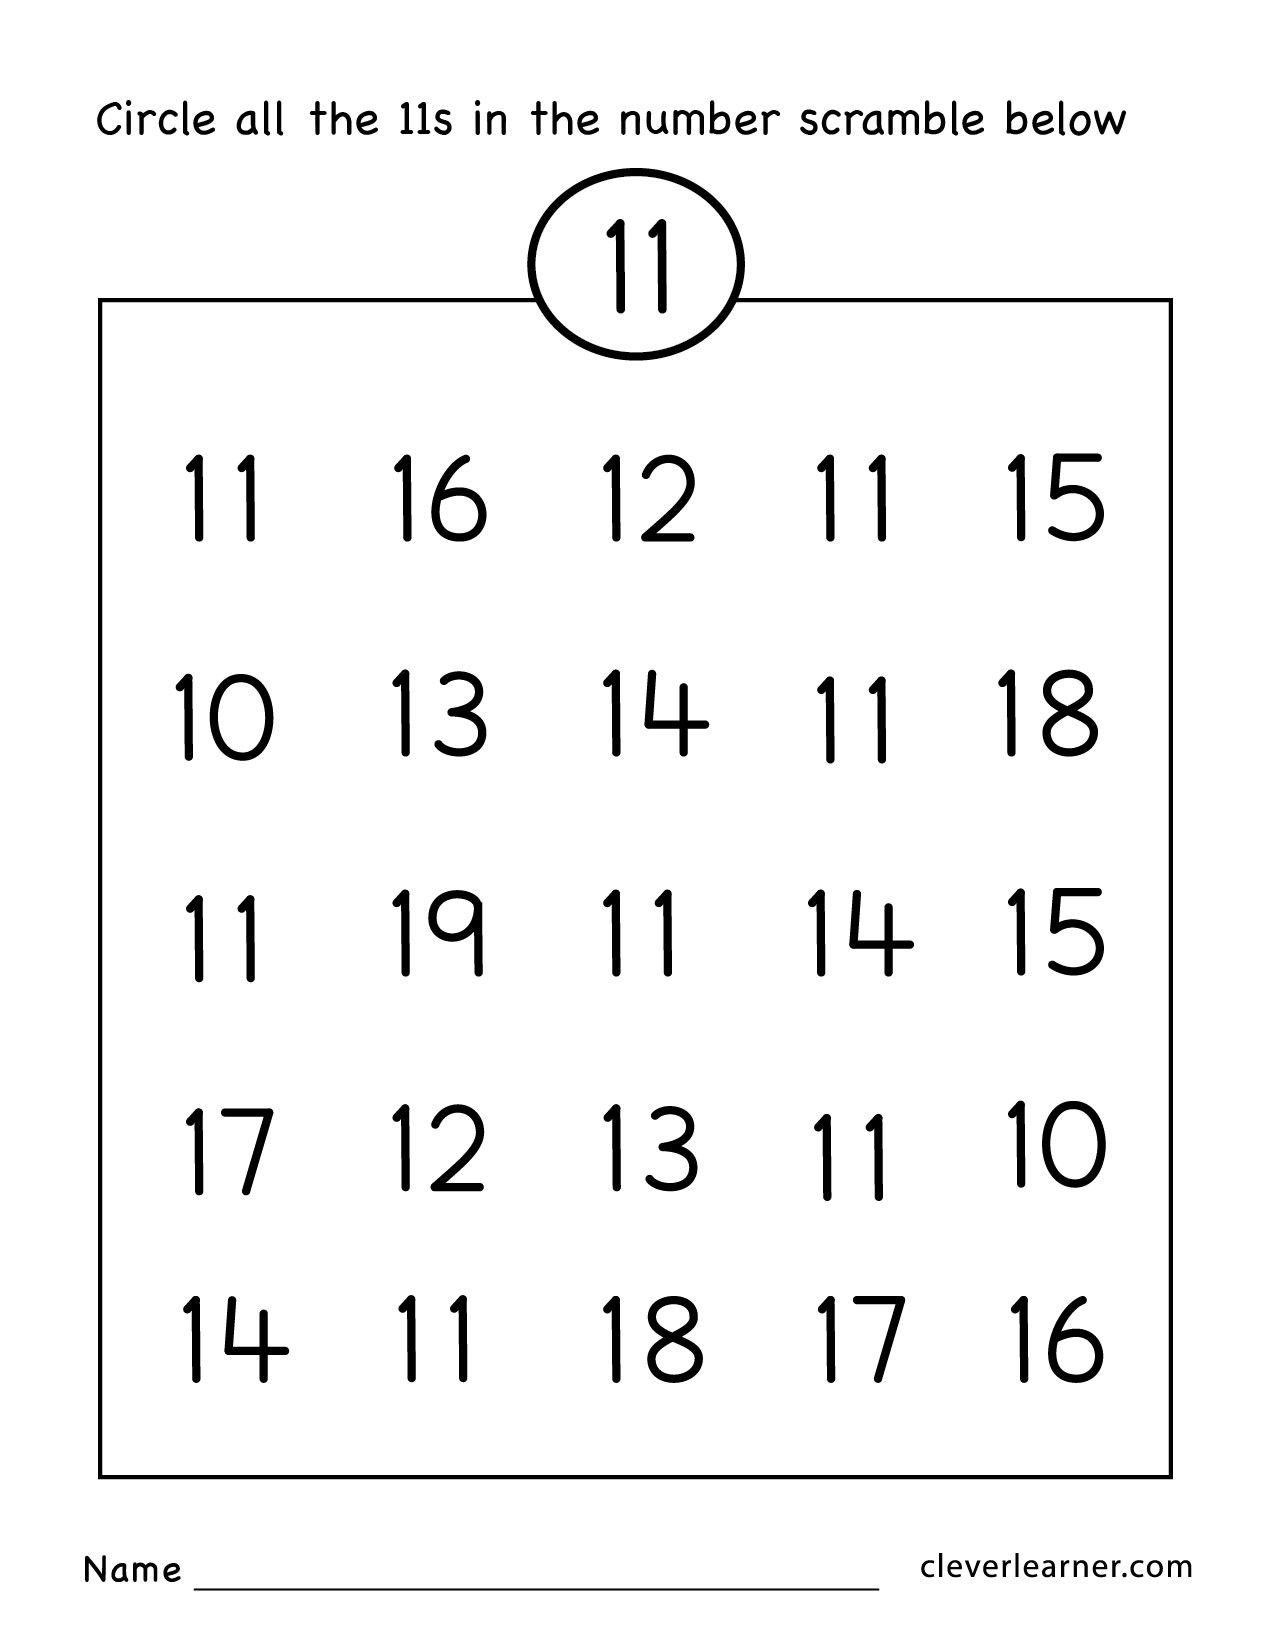 Ordinal Numbers Worksheets For Nursery Best Number Worksheet Math Workshe Ets 11 20 Counting 1